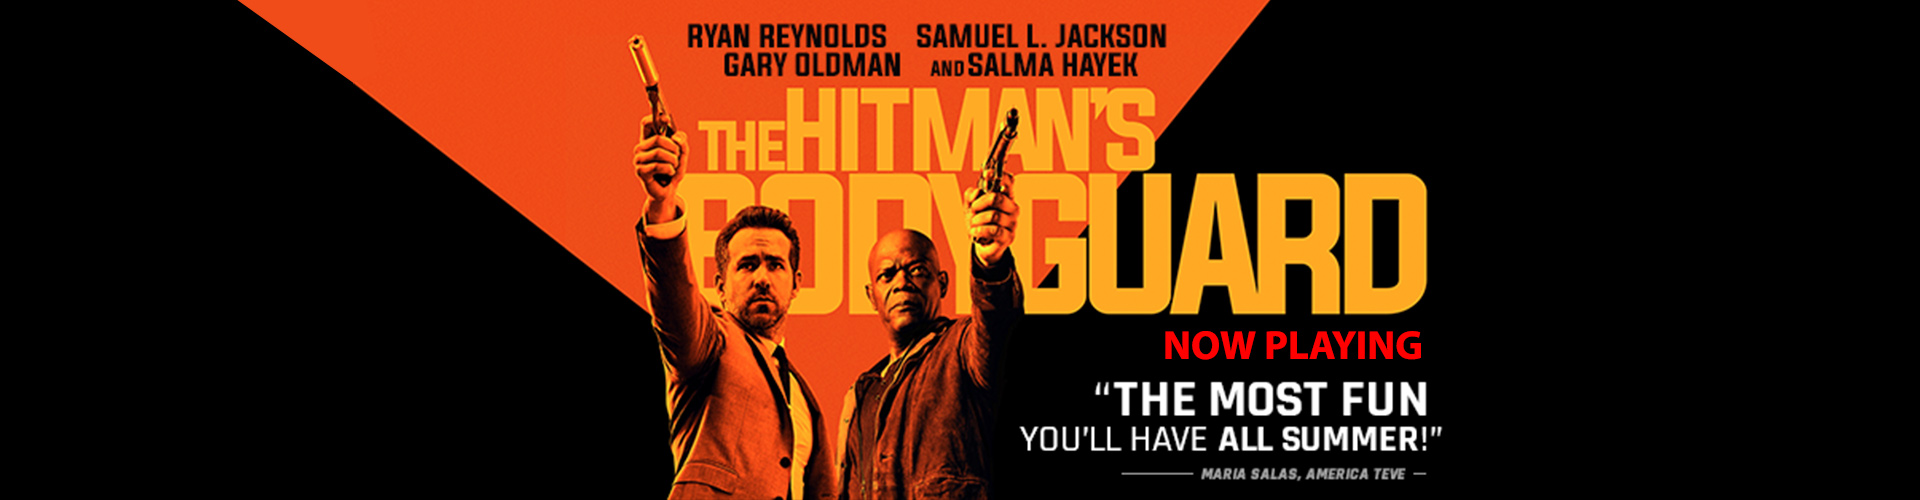 hitmans-bodyguard-now-playing